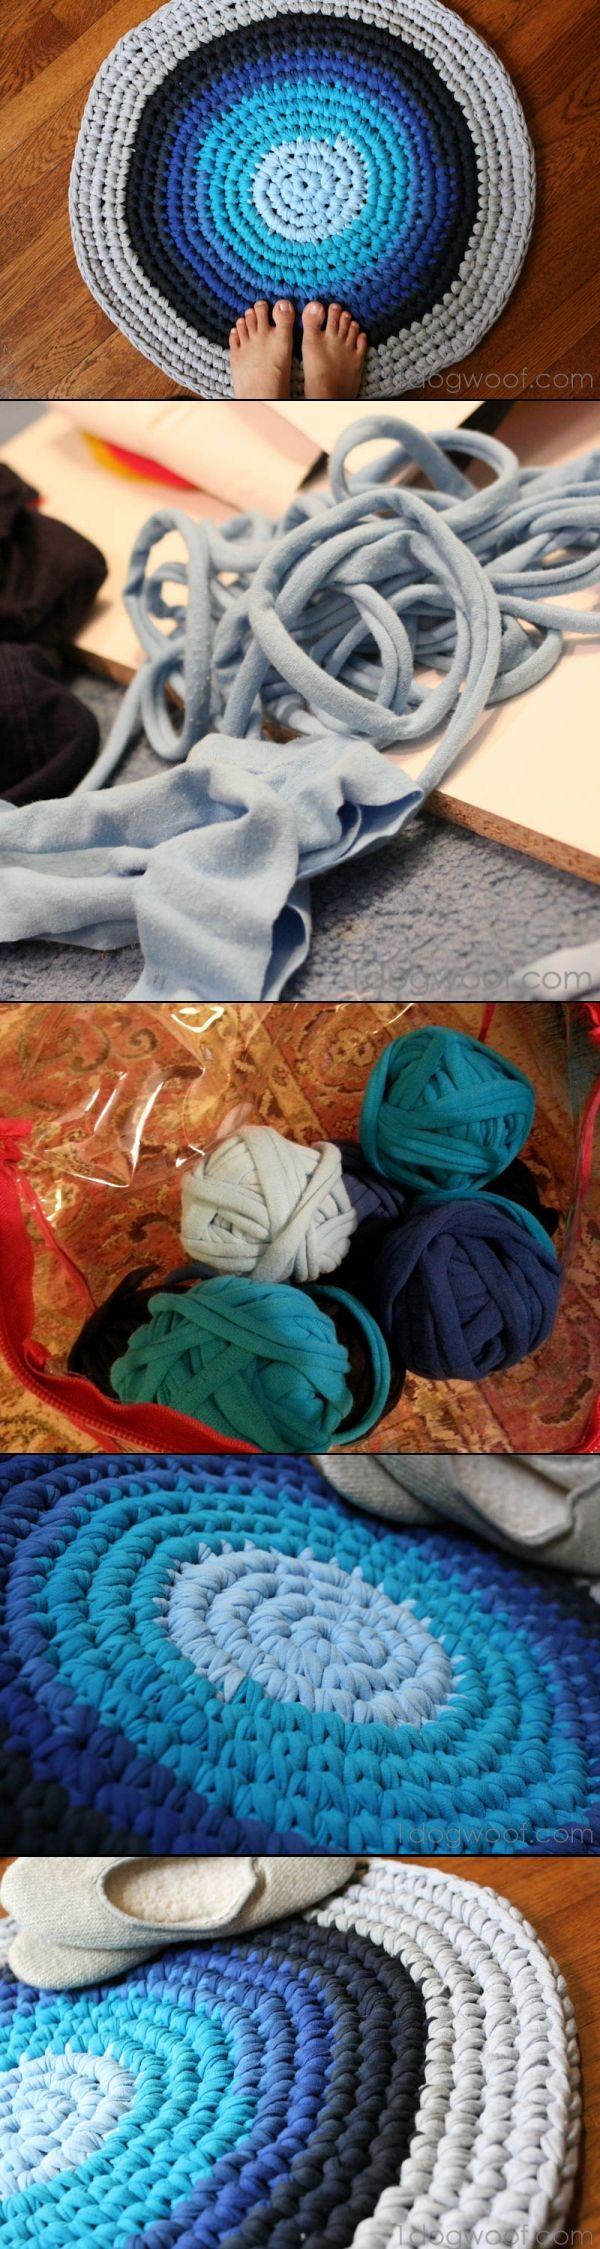 How to Make a T-Shirt Rag Rug